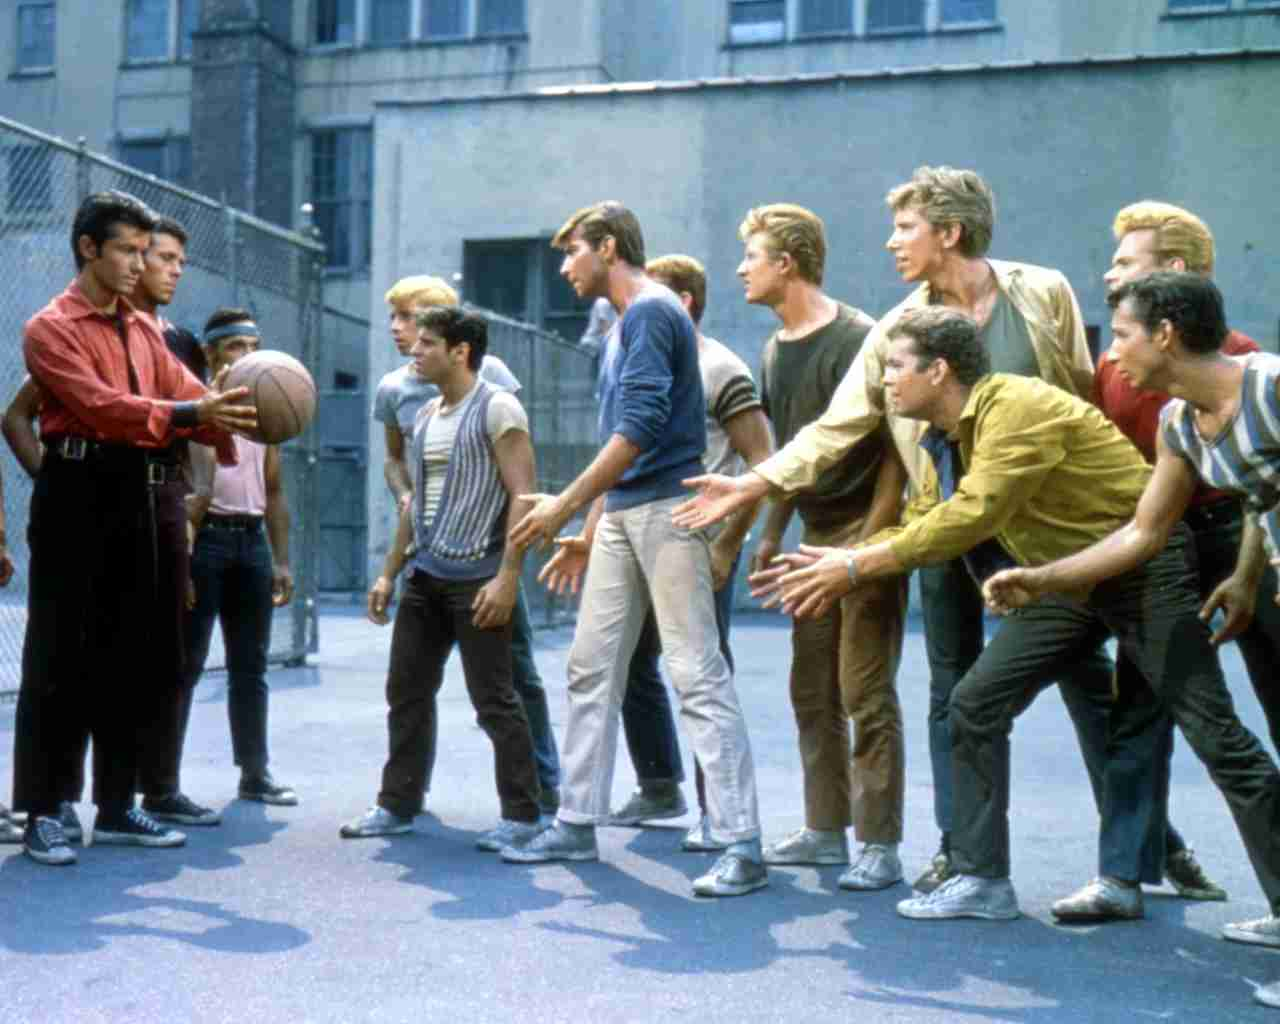 Actors George Chakiris, Tony Mordente, Tucker Smith and Russ Tamblyn in a scene from the musical film